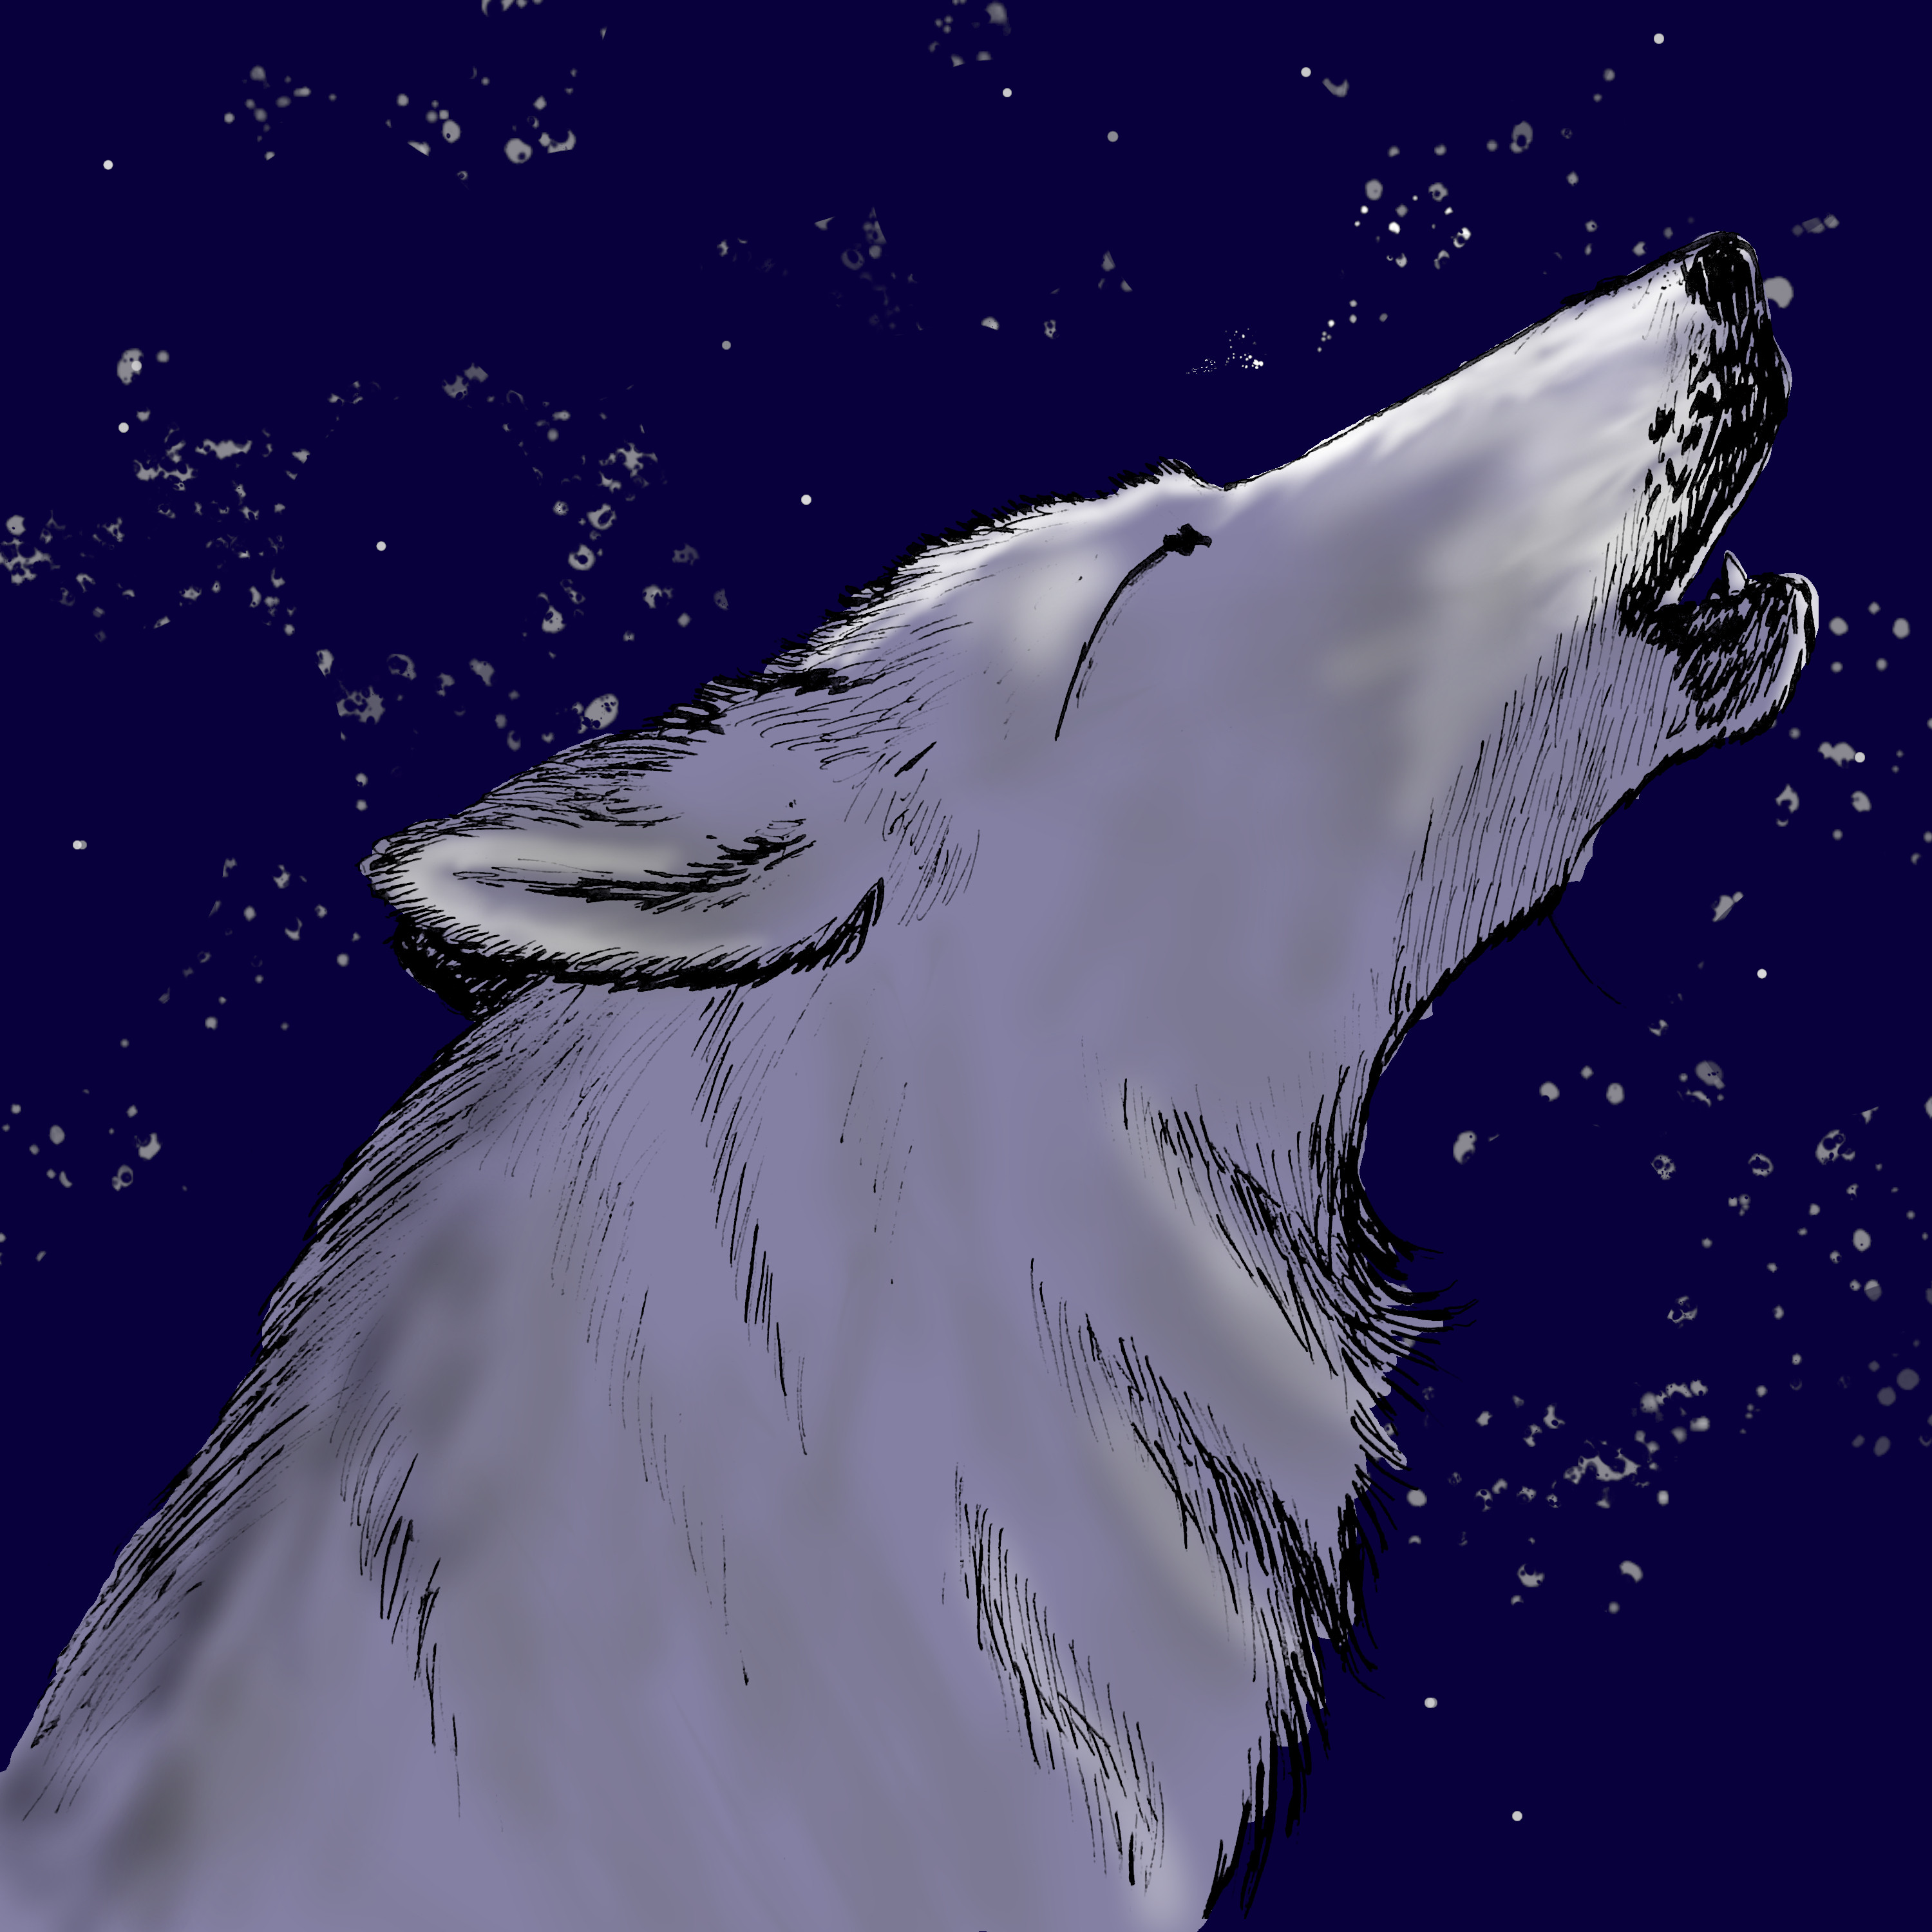 Howling wolf, somewhat colored